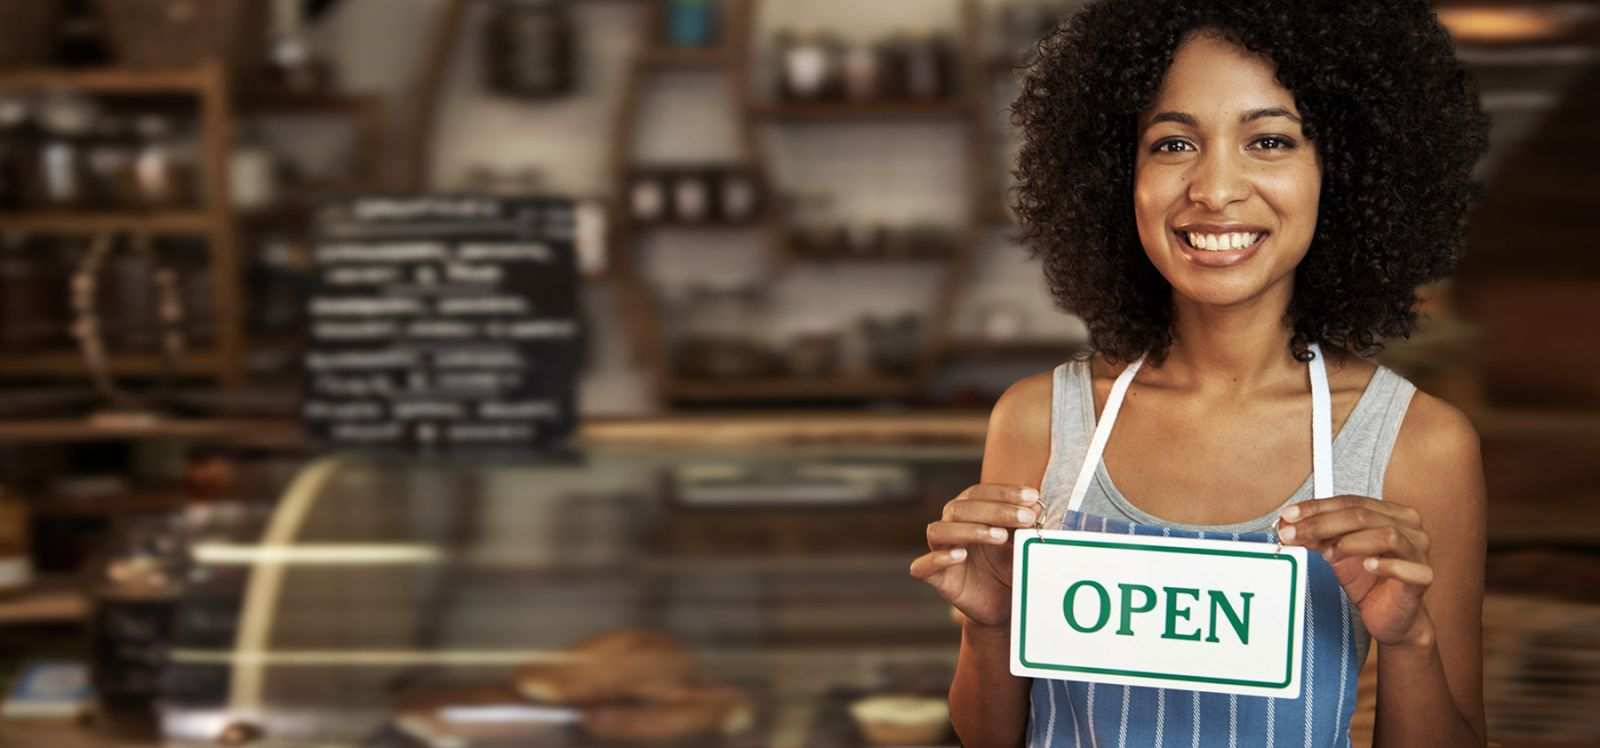 Supporting Small Businesses is Critical for COVID-19 Recovery